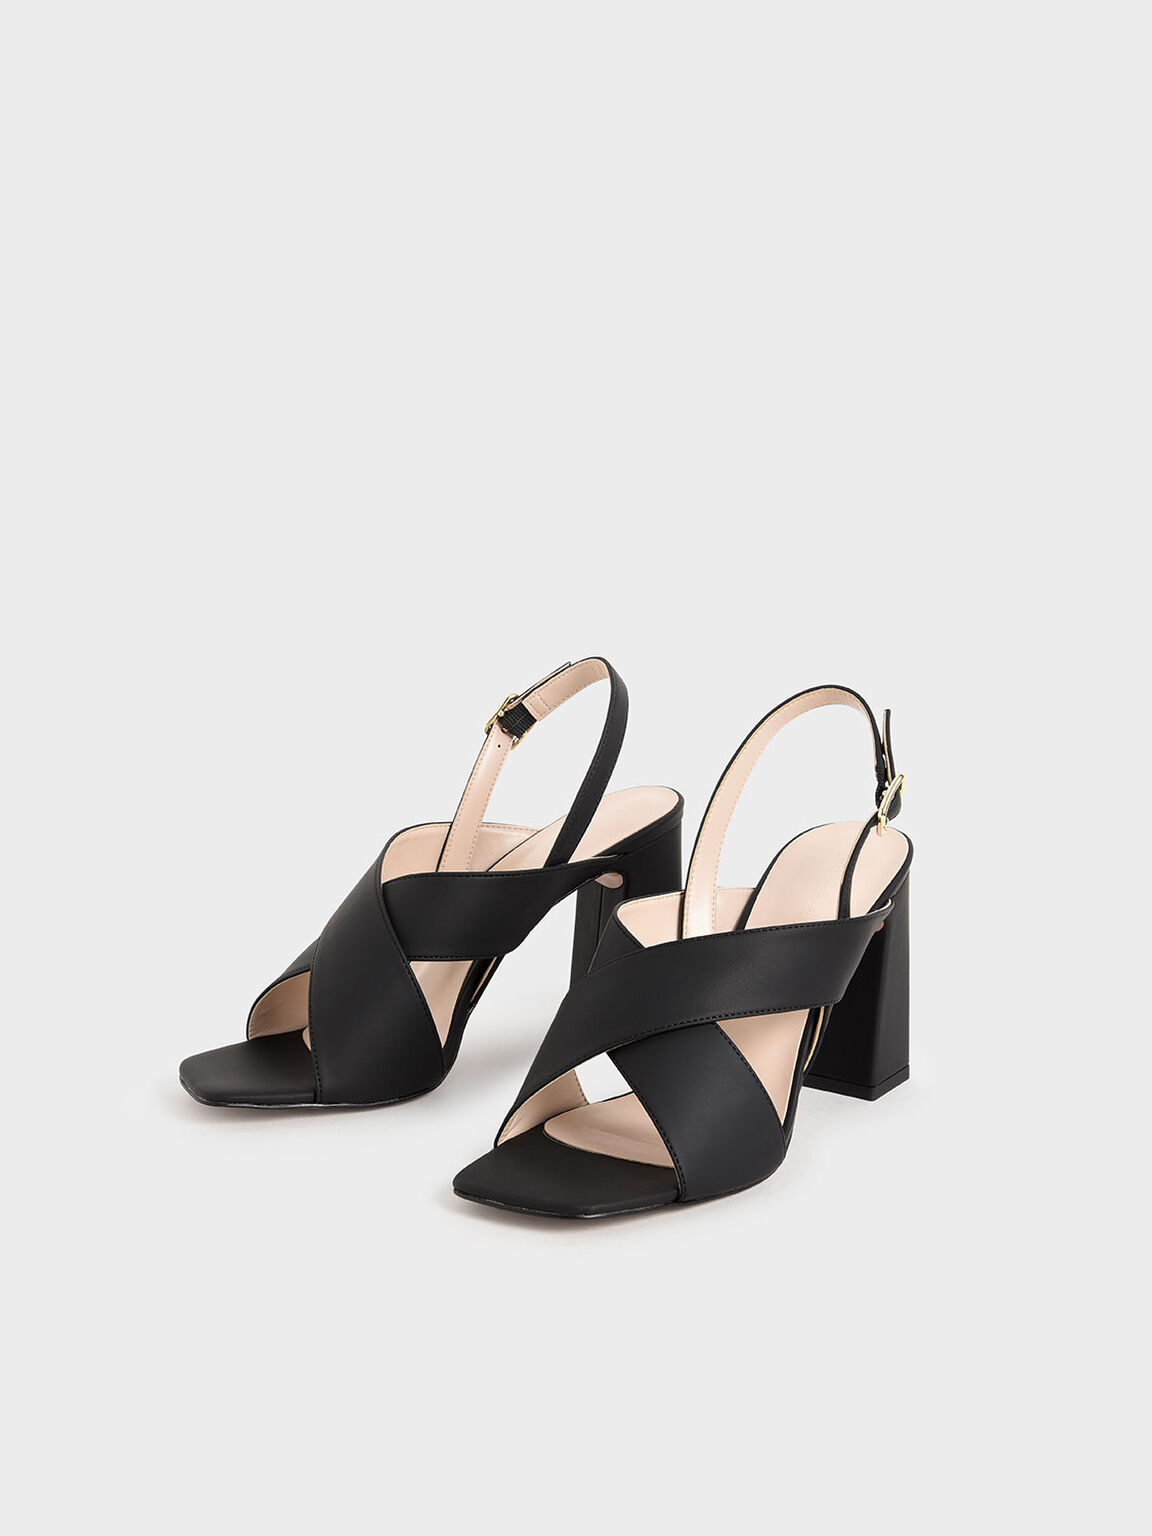 Criss-Cross Slingback Heeled Sandals, Black, hi-res